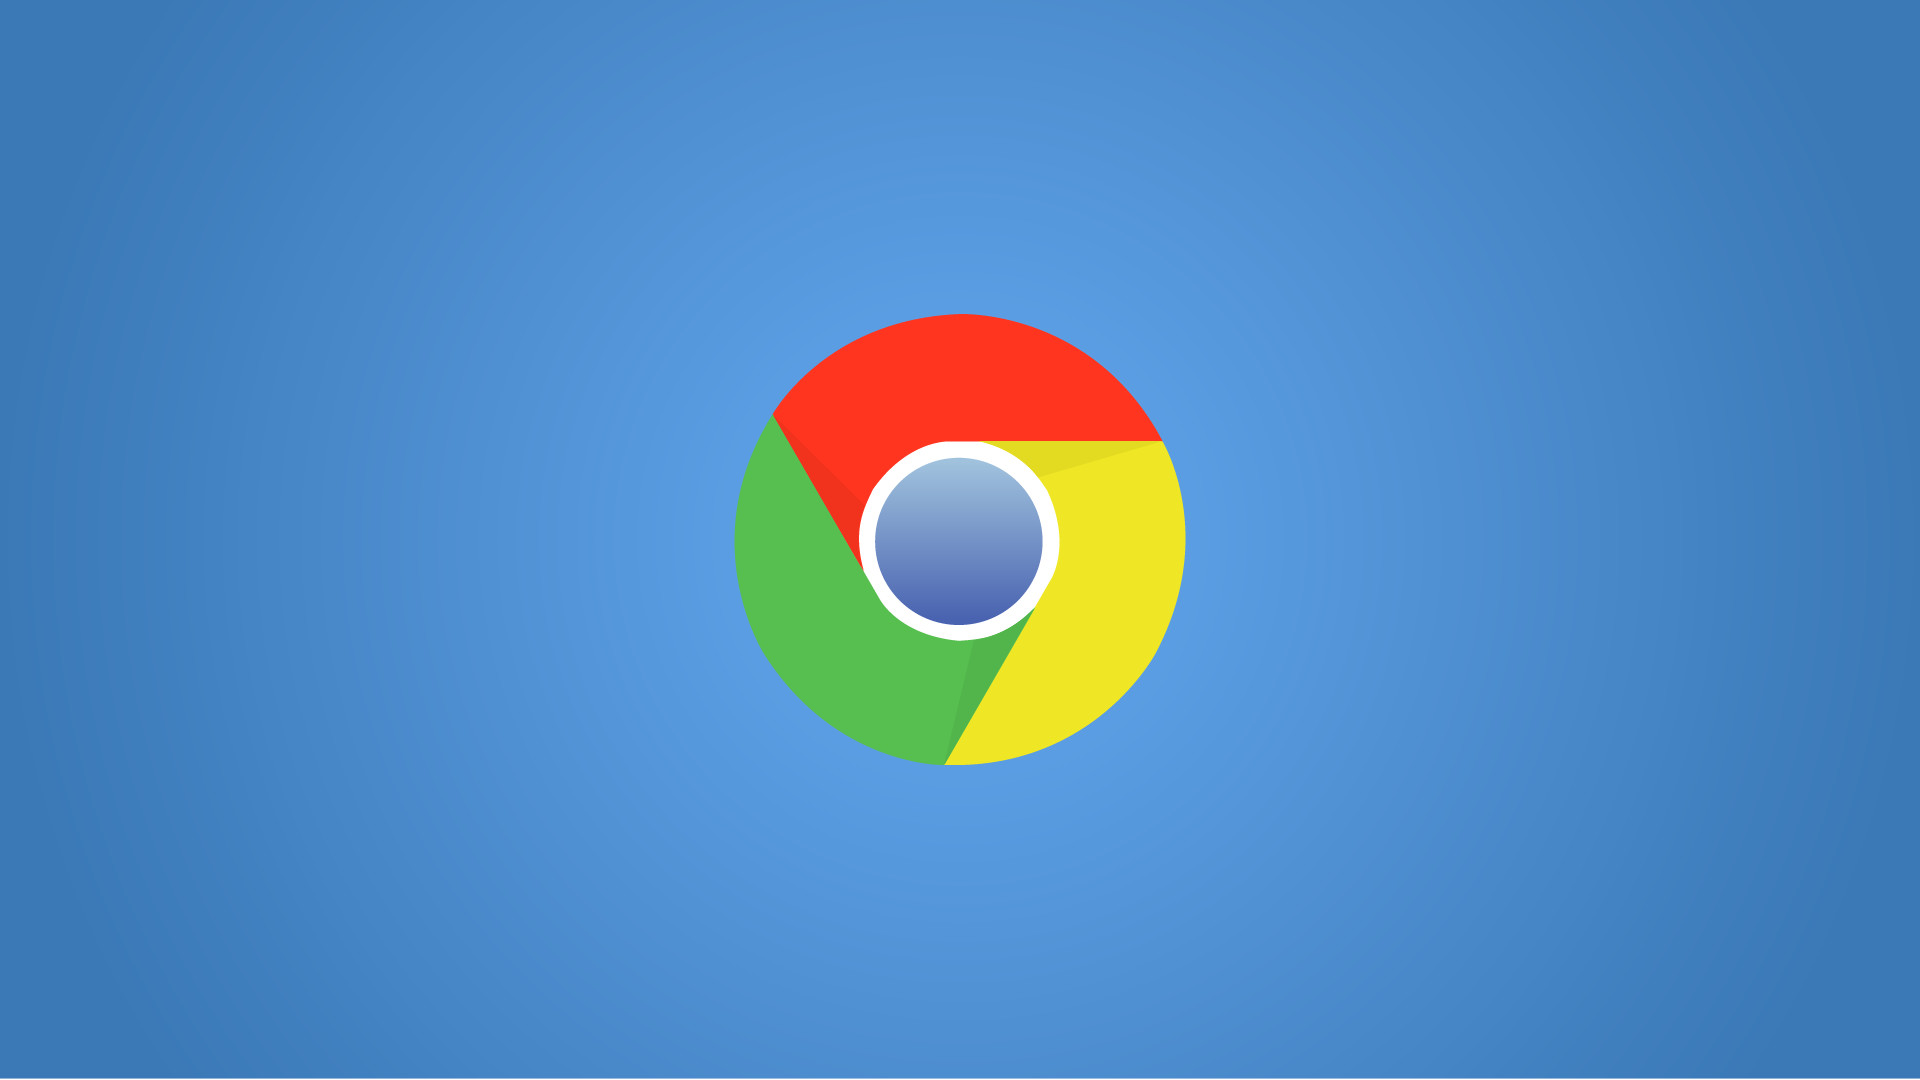 Chrome Backgrounds (55+ images)